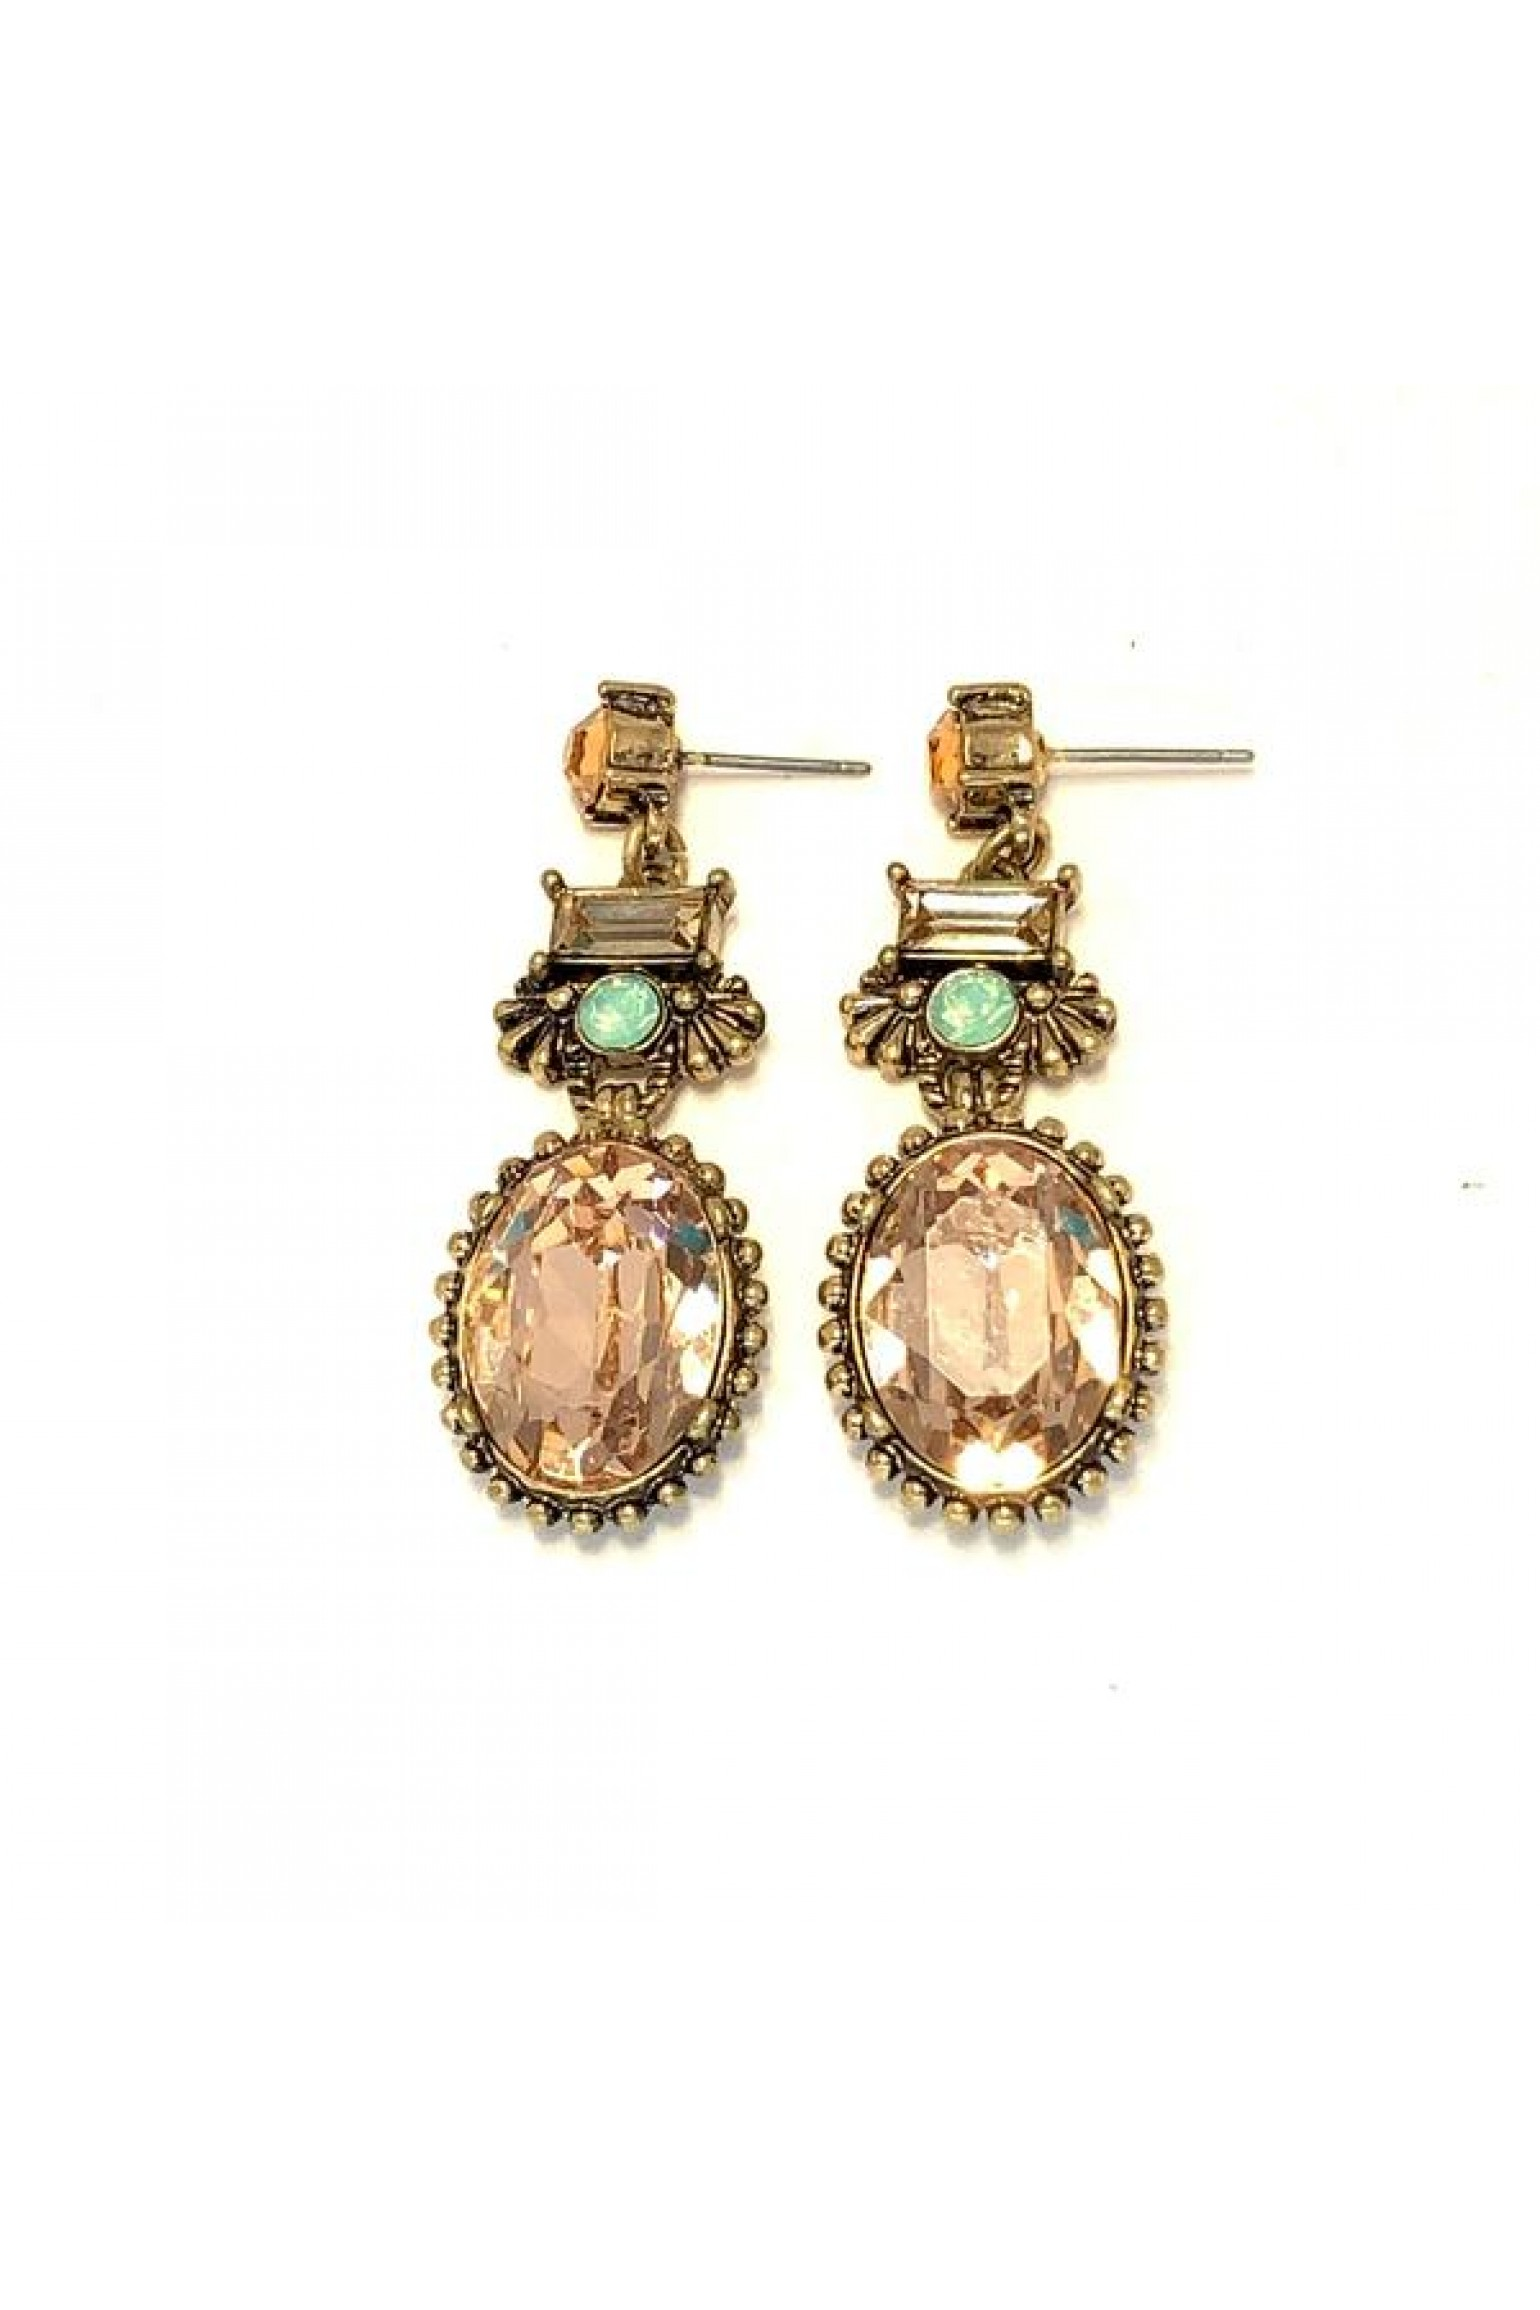 Zafino Tia Peach Drop Earrings